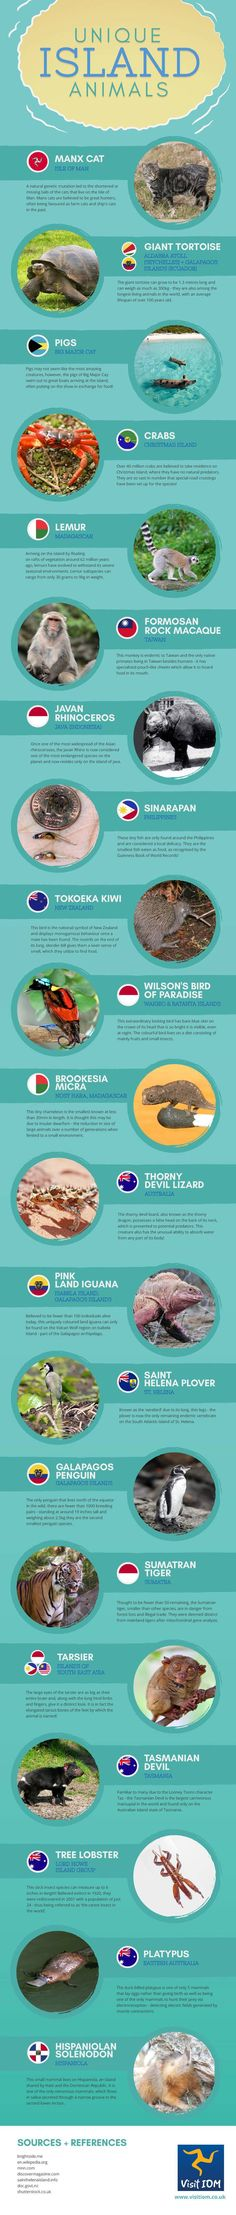 These are endemic animals, creatures that are only found naturally in one place – the distinct species of the Galapagos Islands